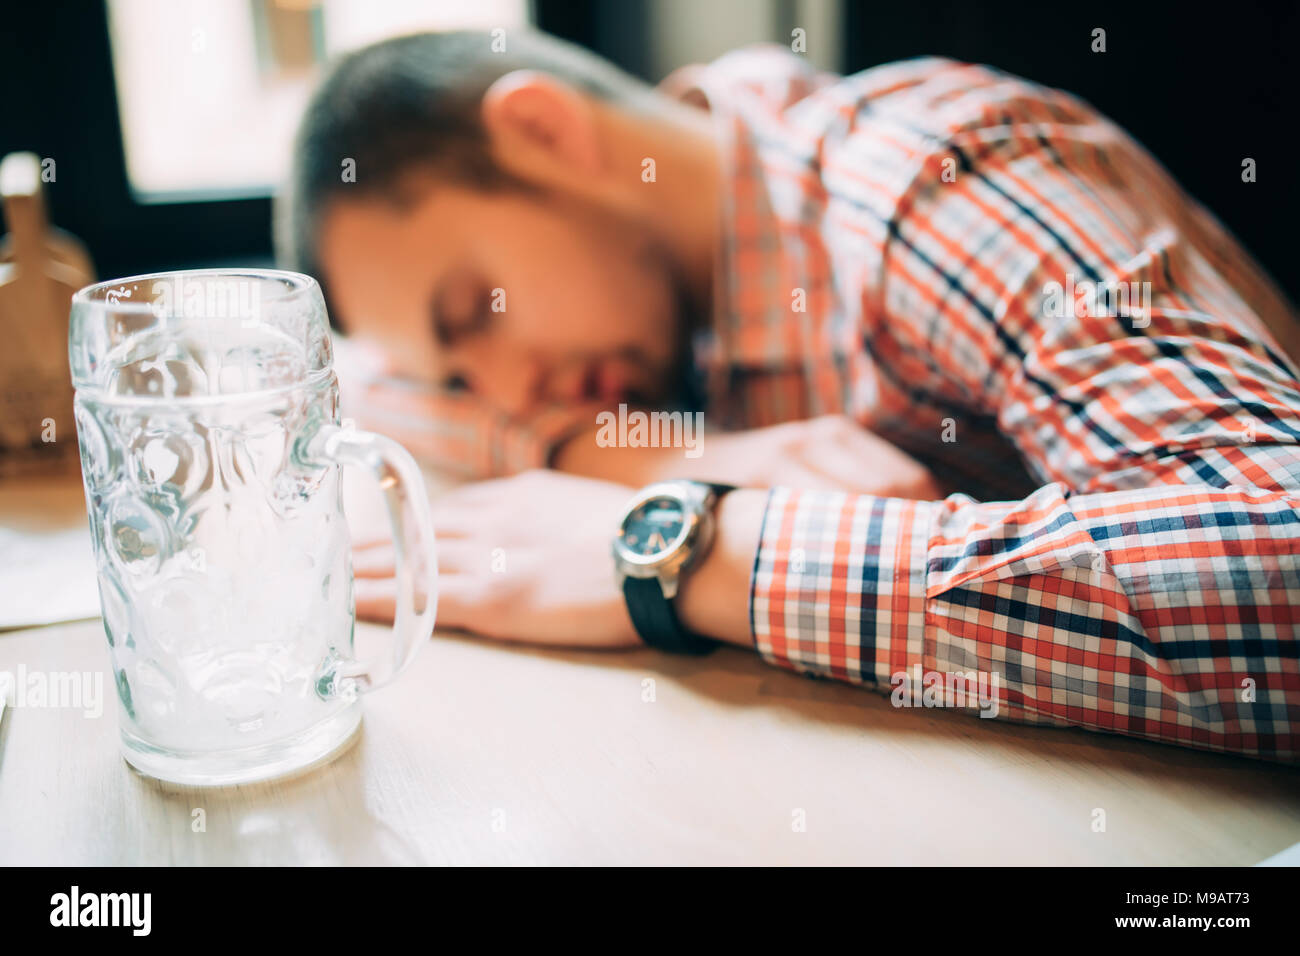 Drunk male customer leaning at the bar counter and sleeping while glass with beer standing near him - Stock Image